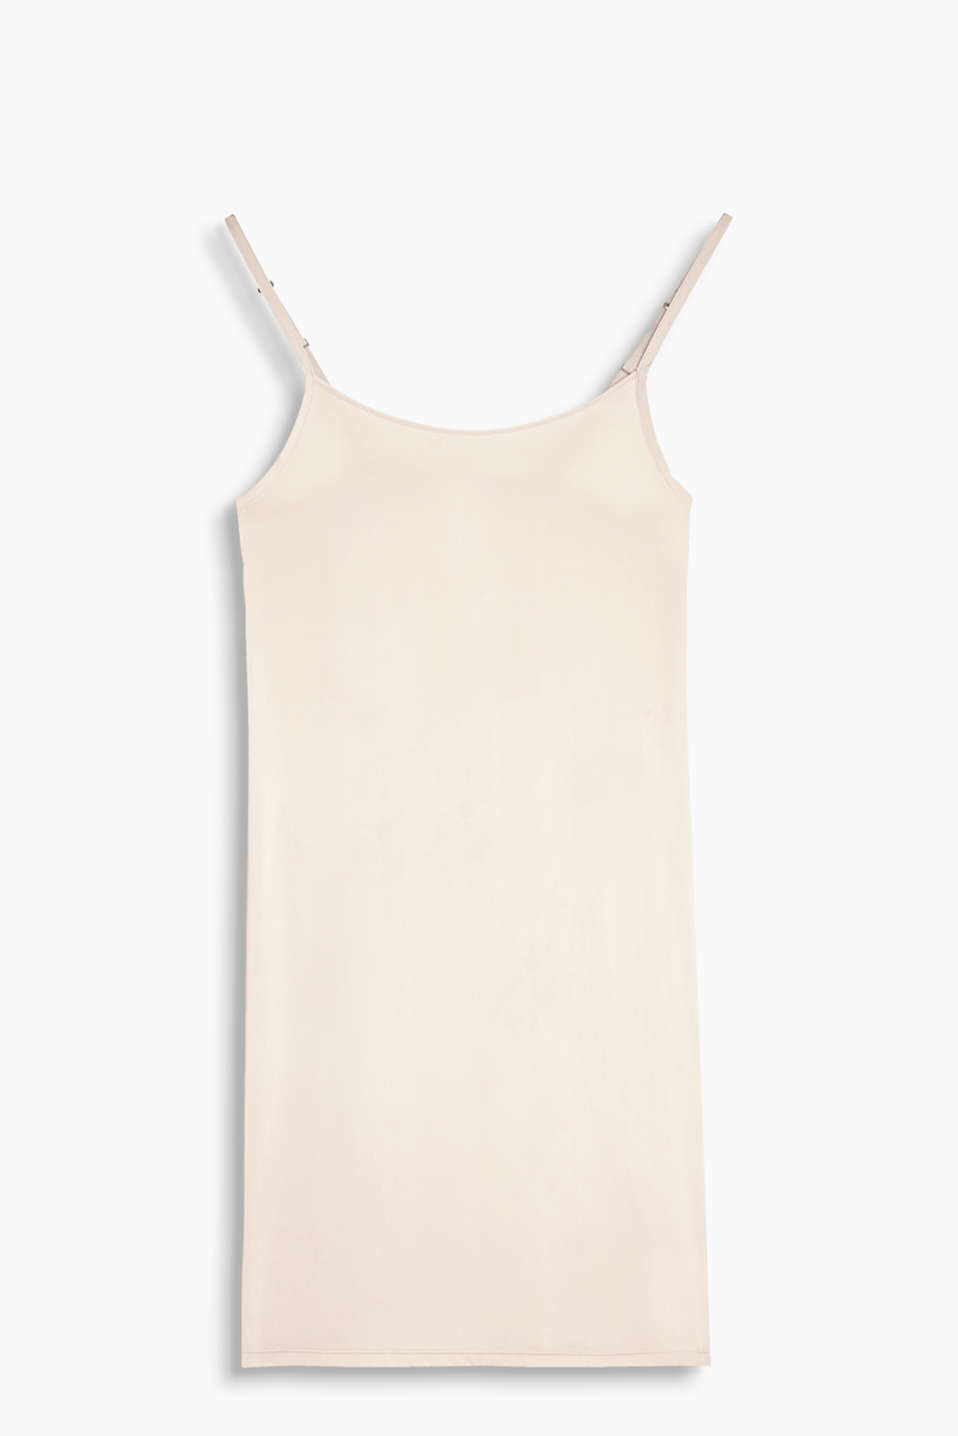 Collection: BROOME - Silky chemise in a minimalist style with adjustable spaghetti straps